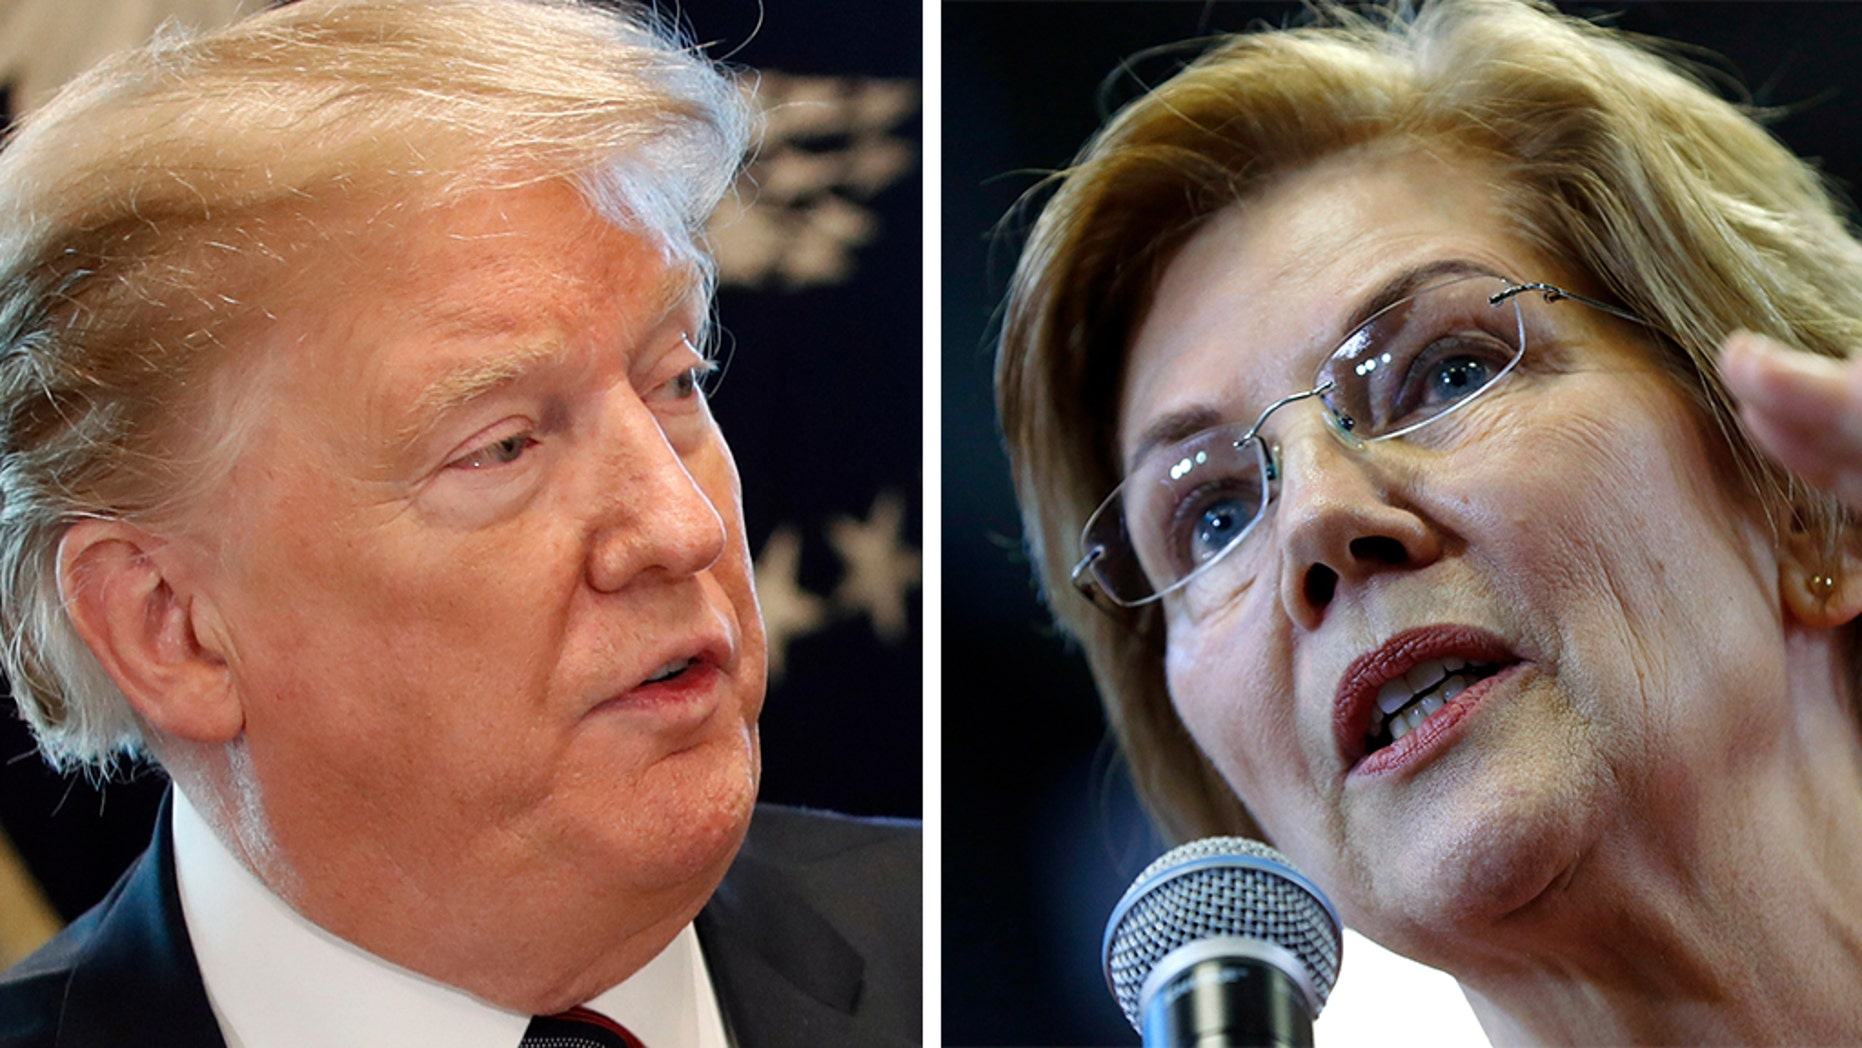 An Unhinged Donald Trump Attacks Elizabeth Warren With A Racially-Charged Tweet